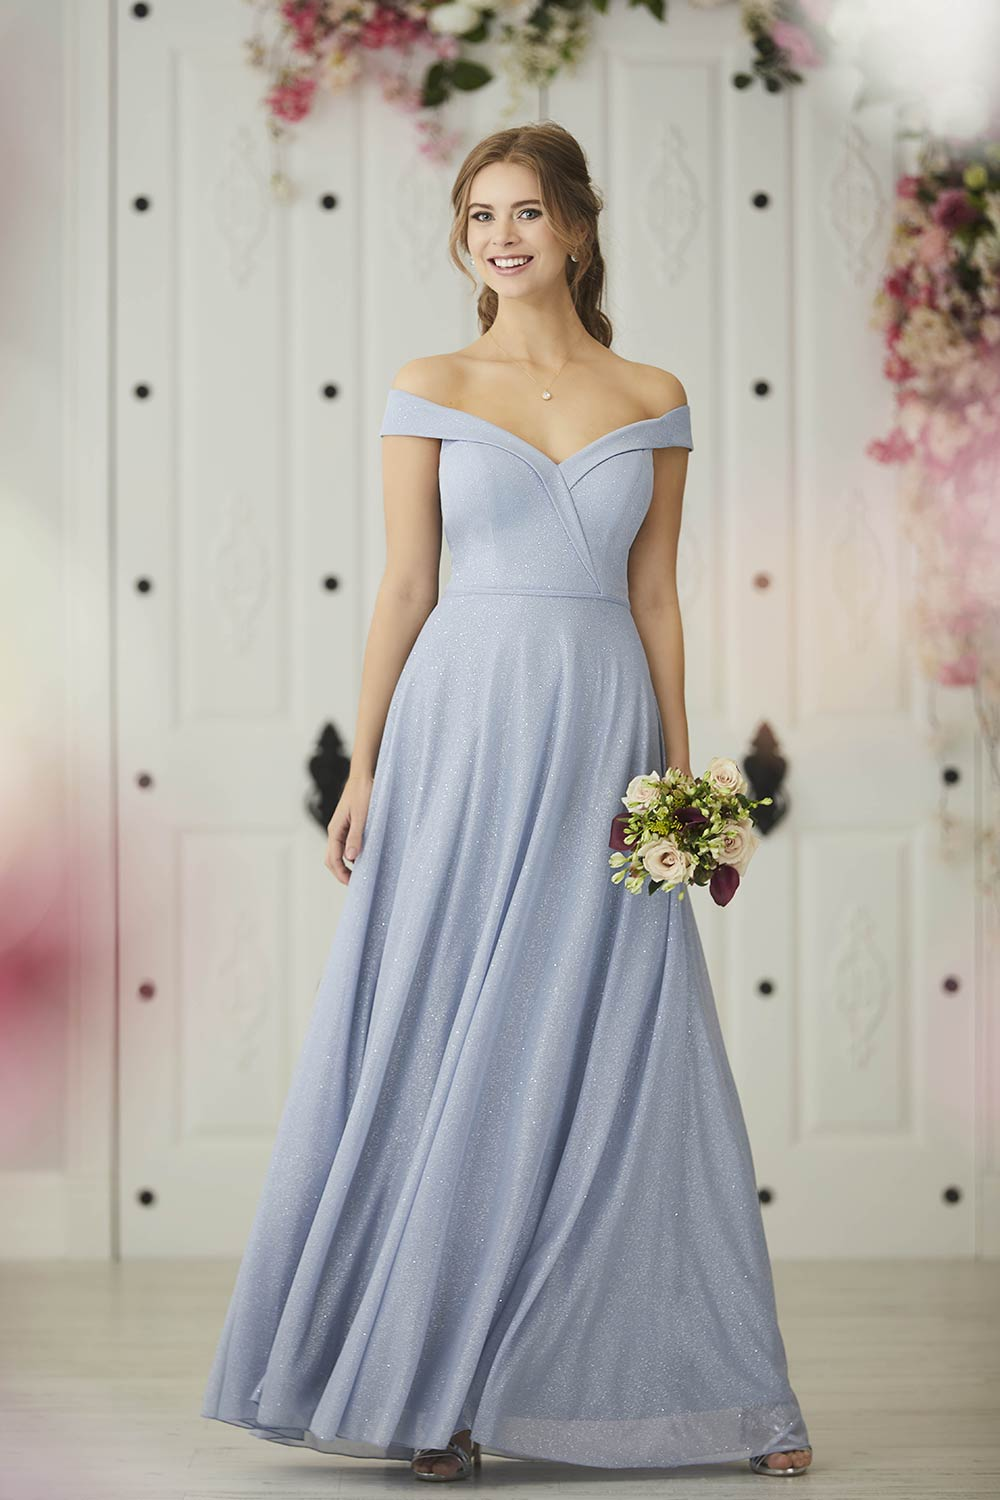 bridesmaid-dresses-jacquelin-bridals-canada-27303